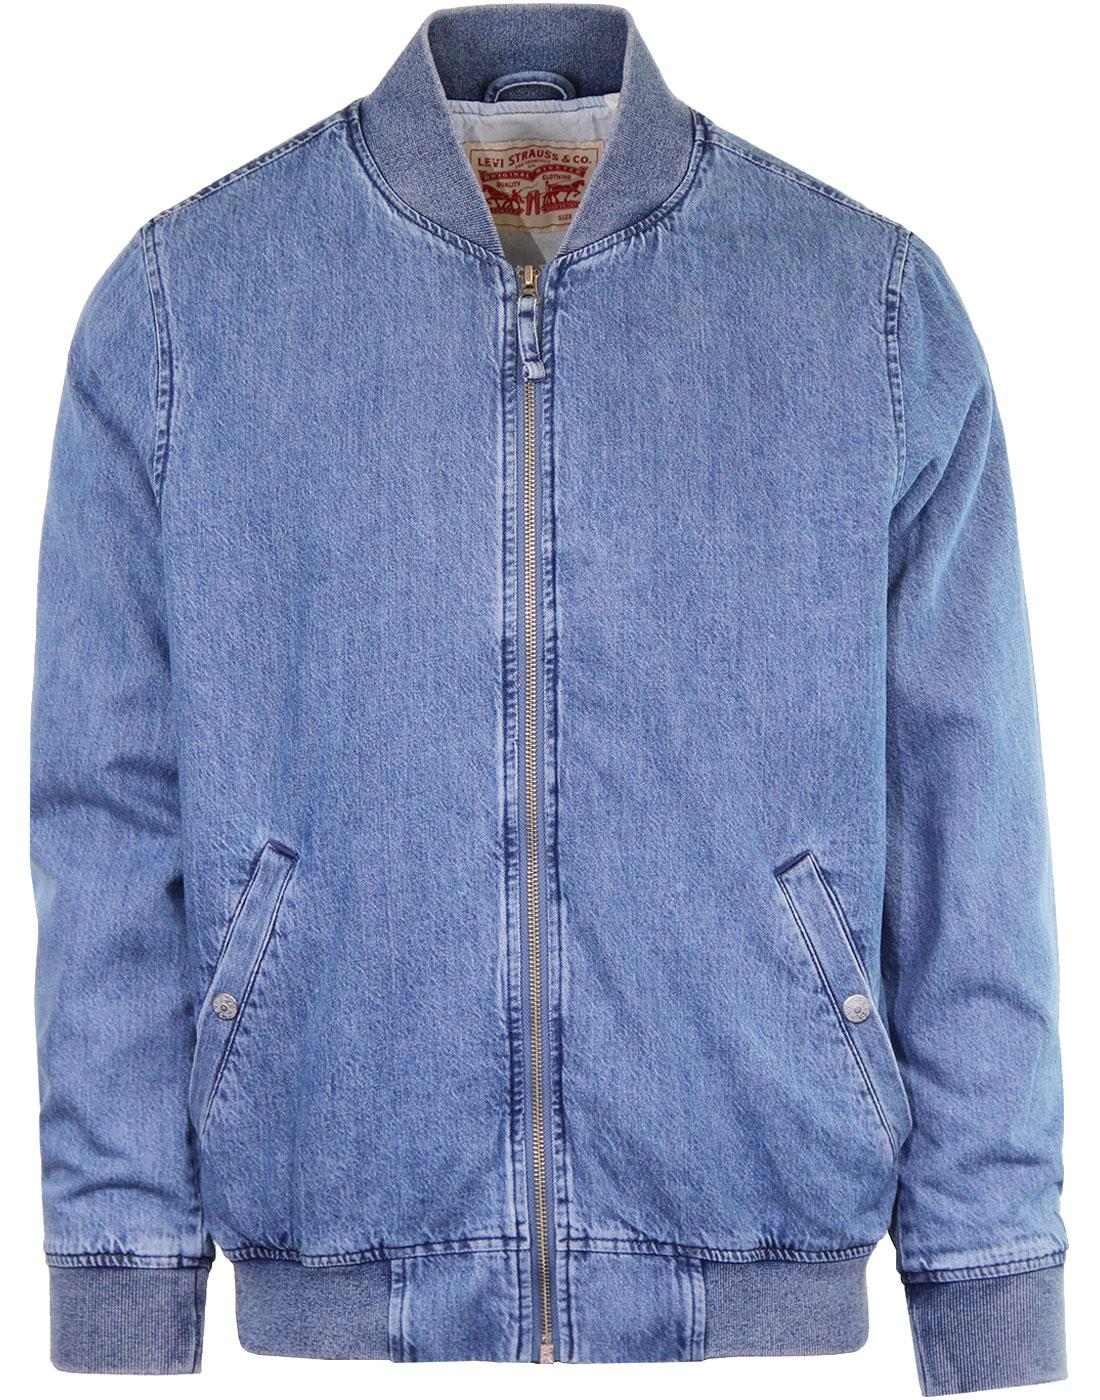 Lyon LEVI'S Men's Retro Mod Denim Bomber Jacket